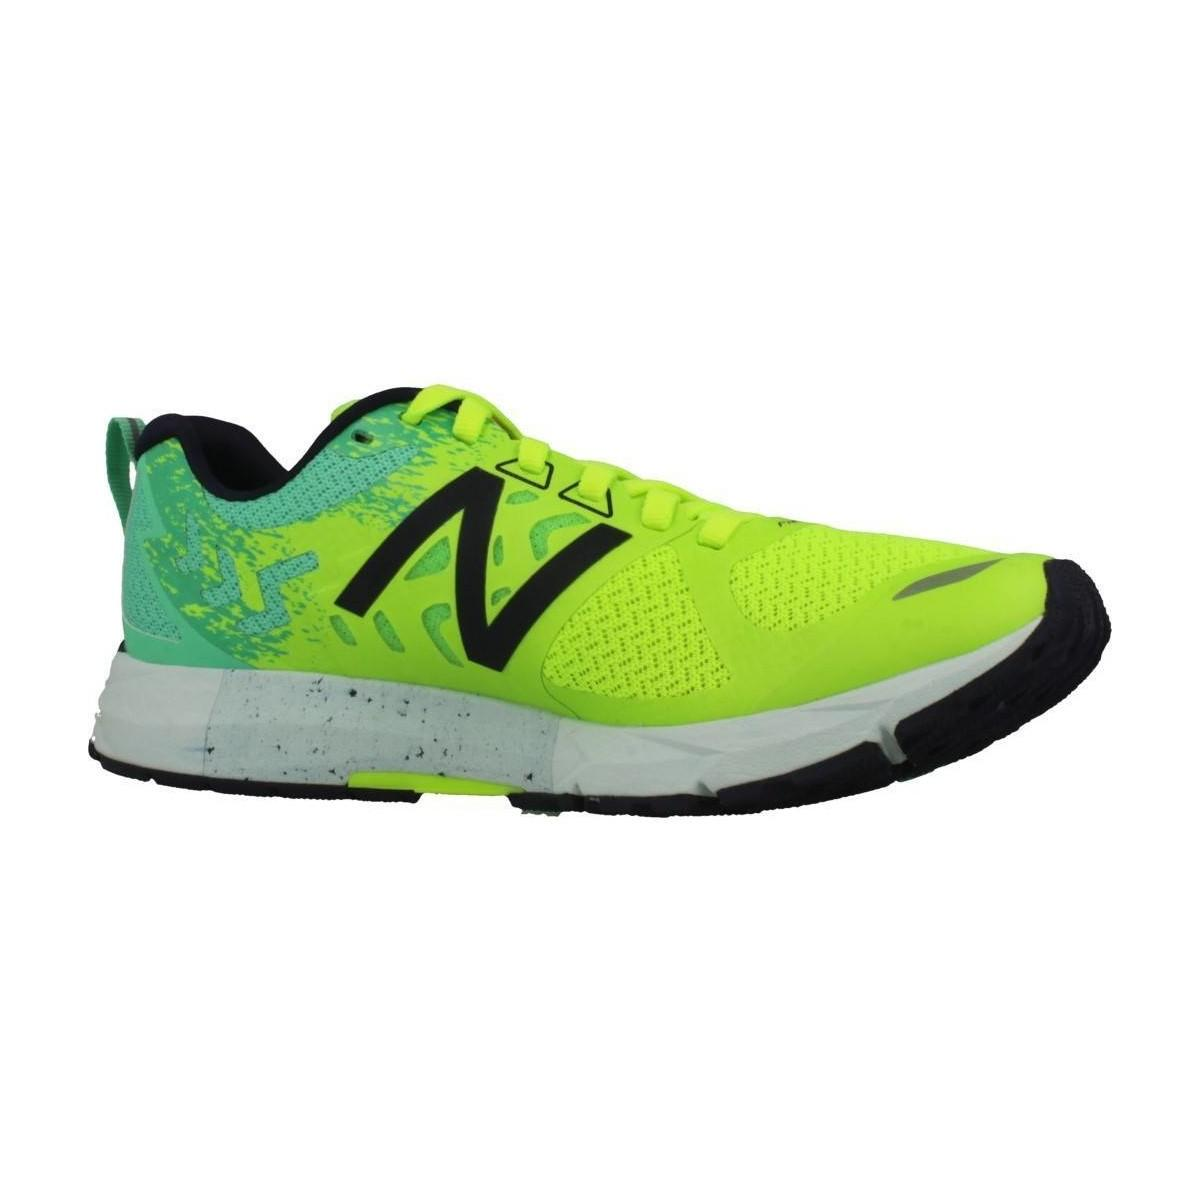 W1500 Gb3 Women's Shoes (trainers) In Green